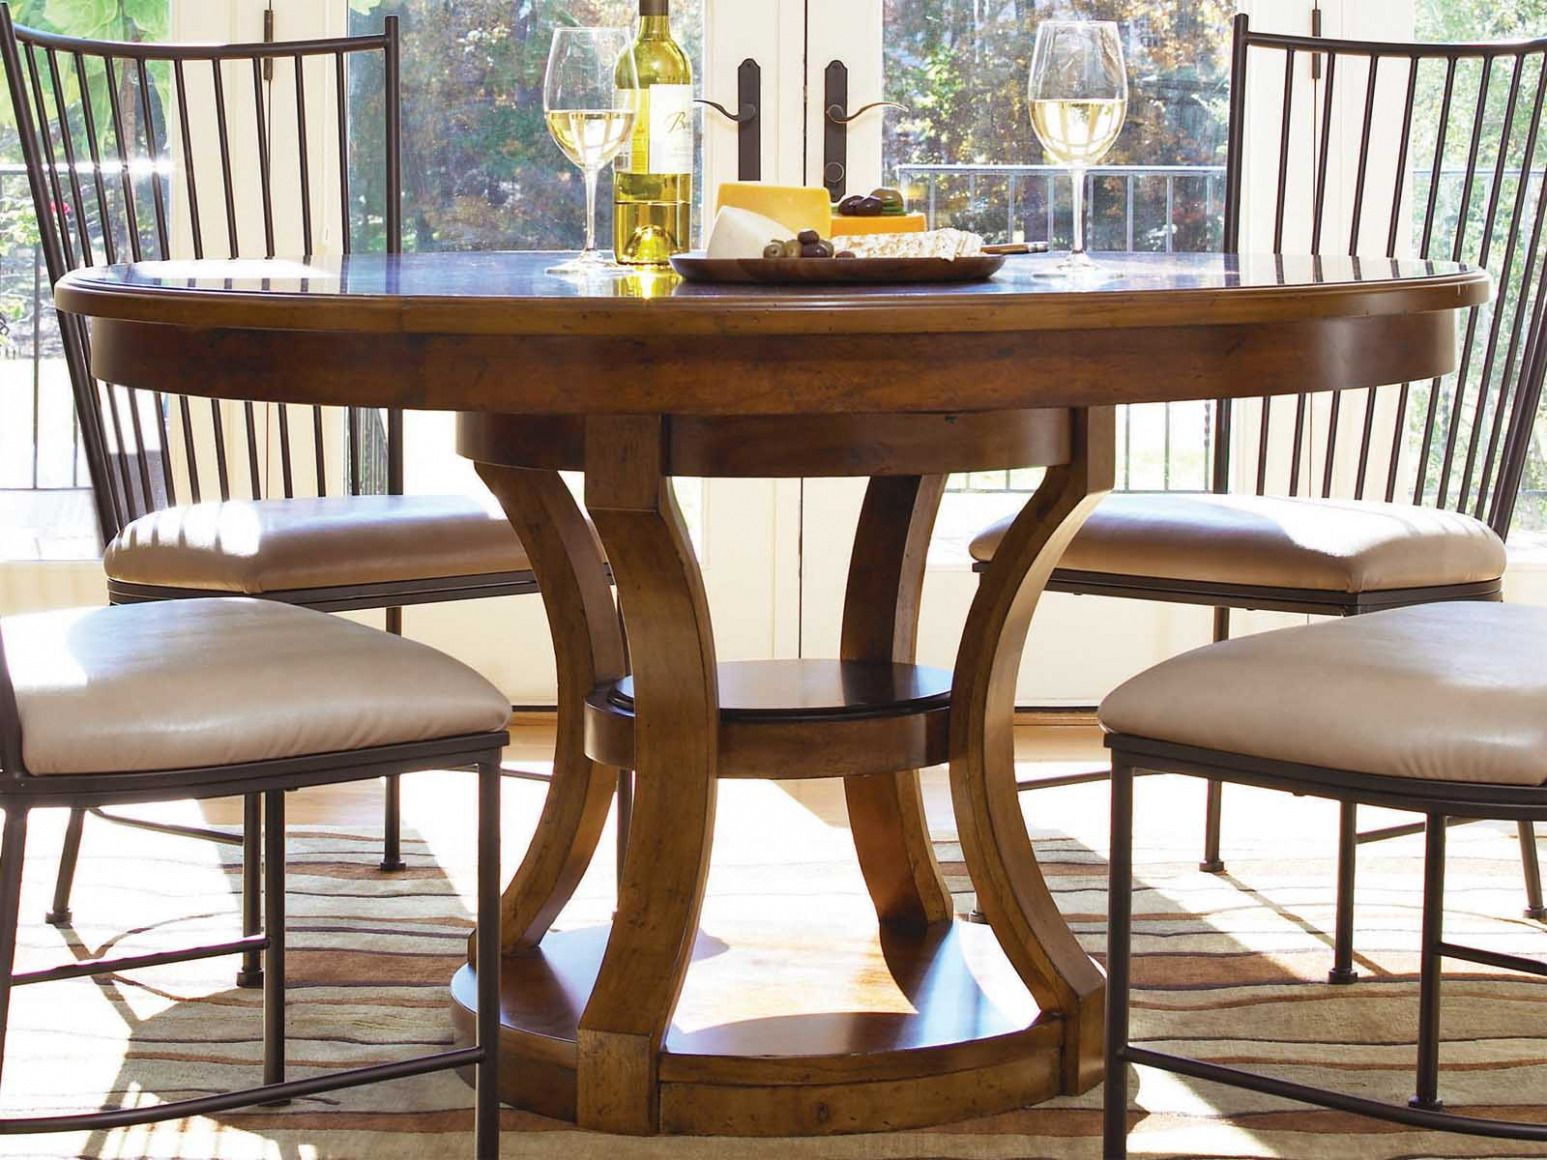 Inch Round Dining Table With Leaf Best Spray Paint For - 54 inch round table with leaf